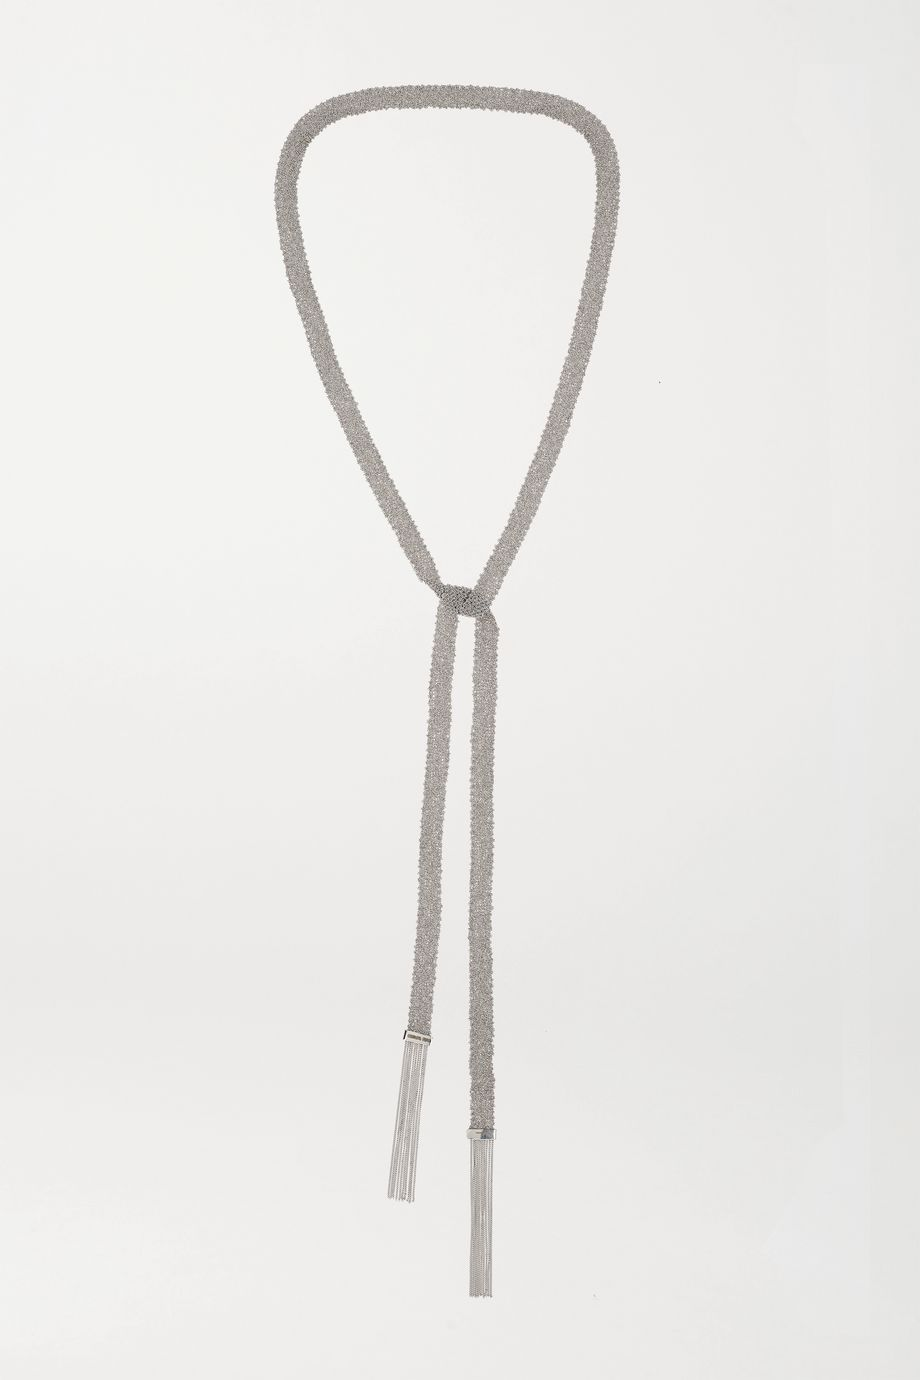 Carolina Bucci Classic 18-karat white gold and silk necklace